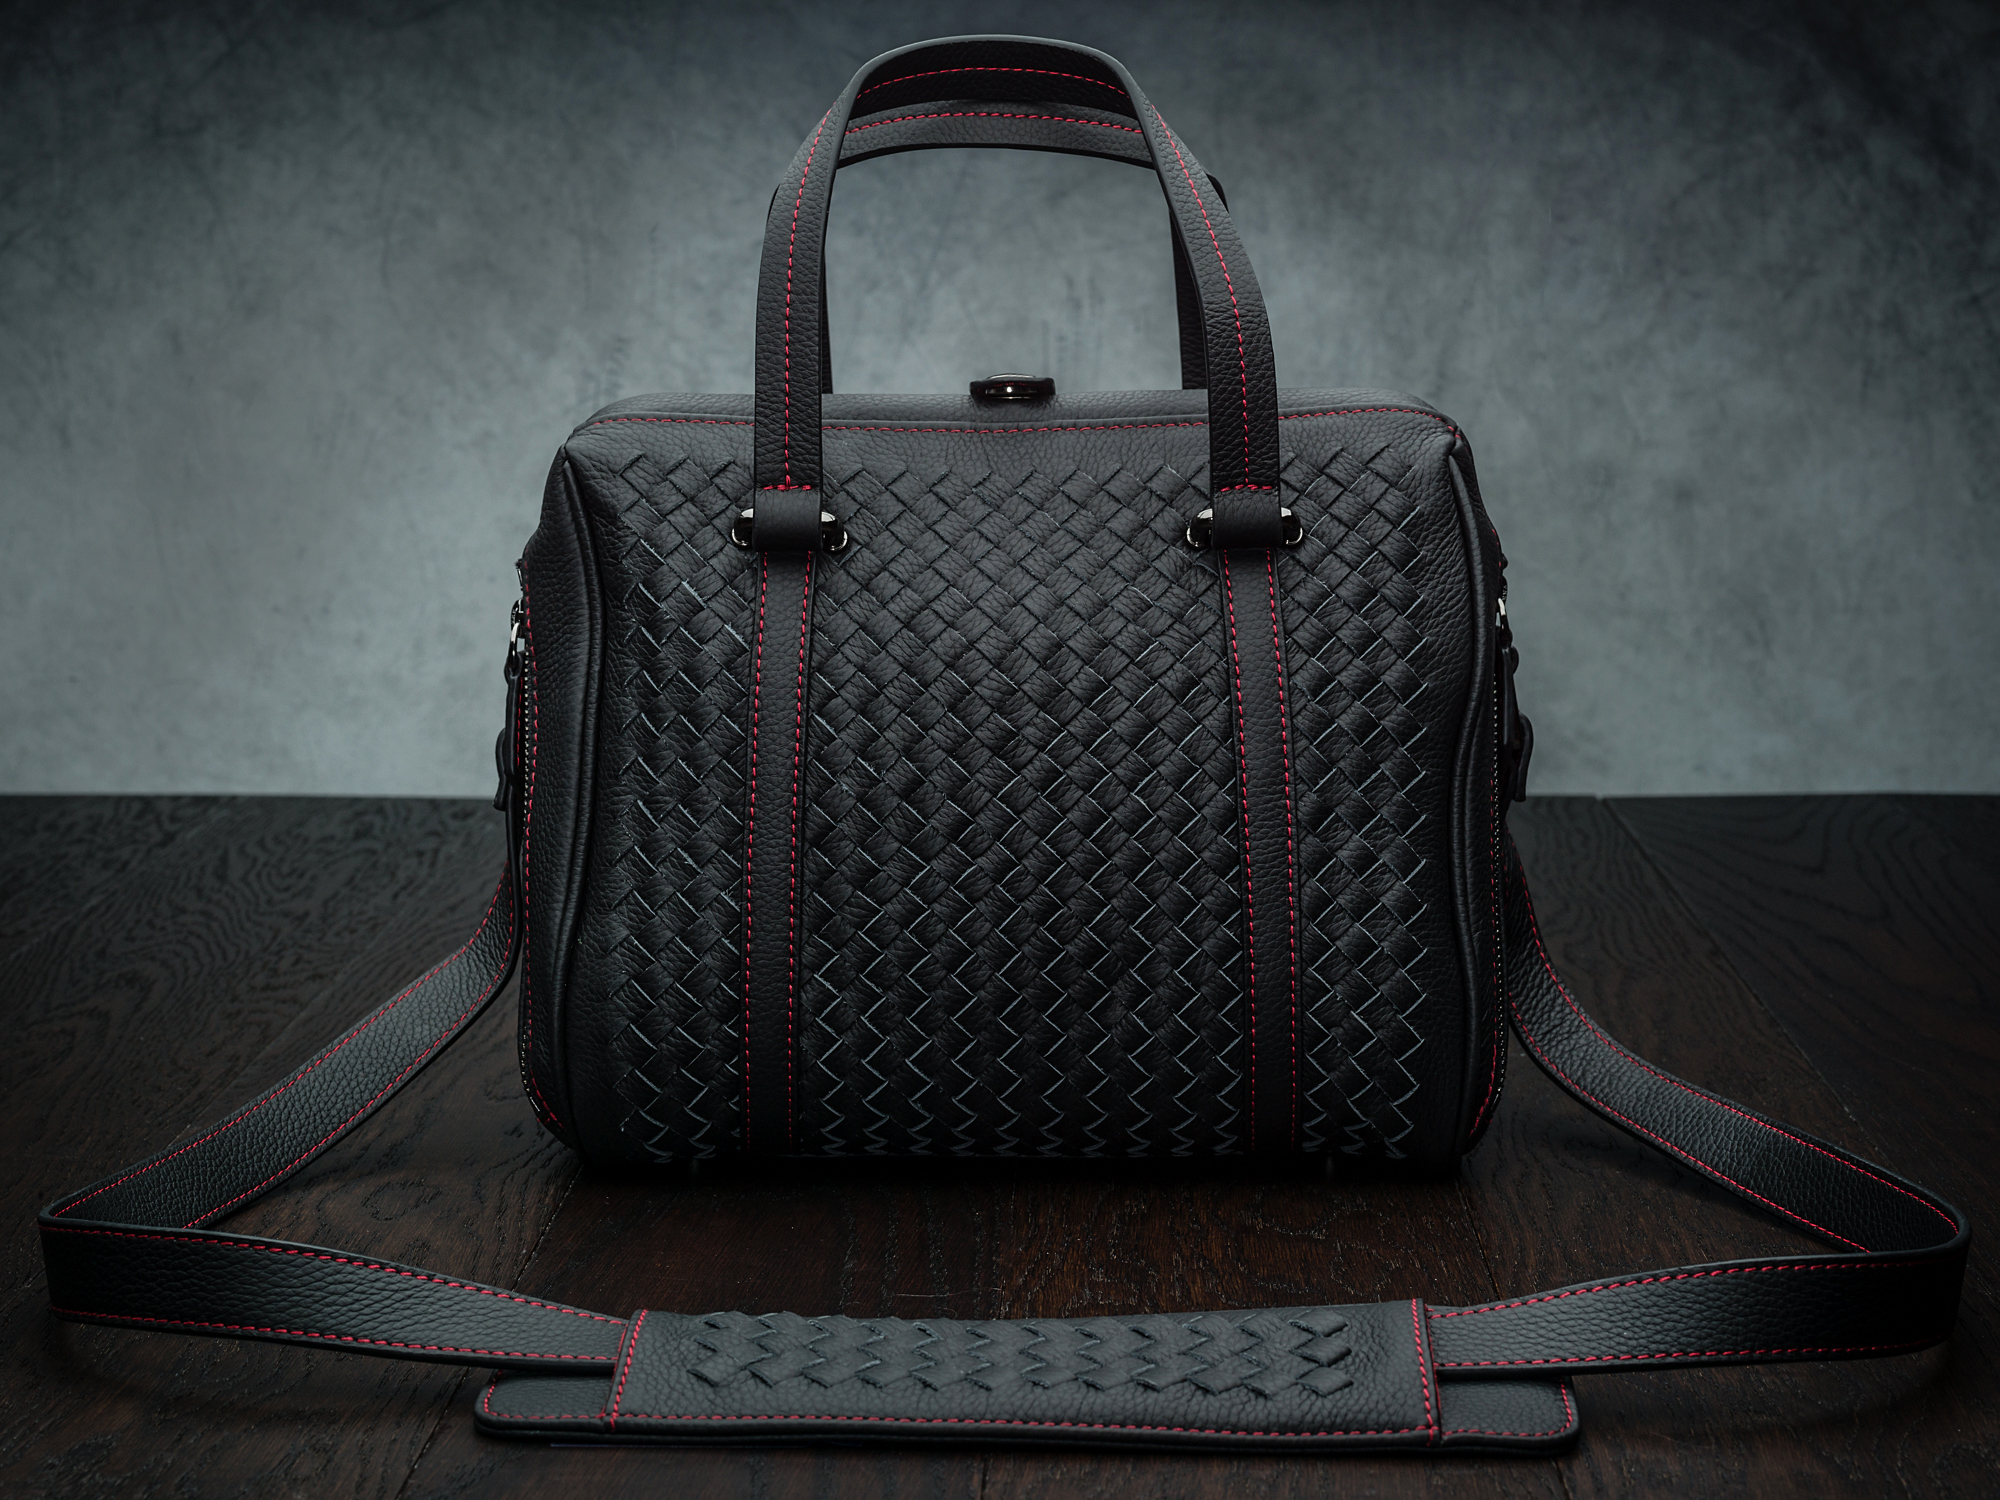 The most Unique and Modern Camera bag with Drastic Styling and complexity